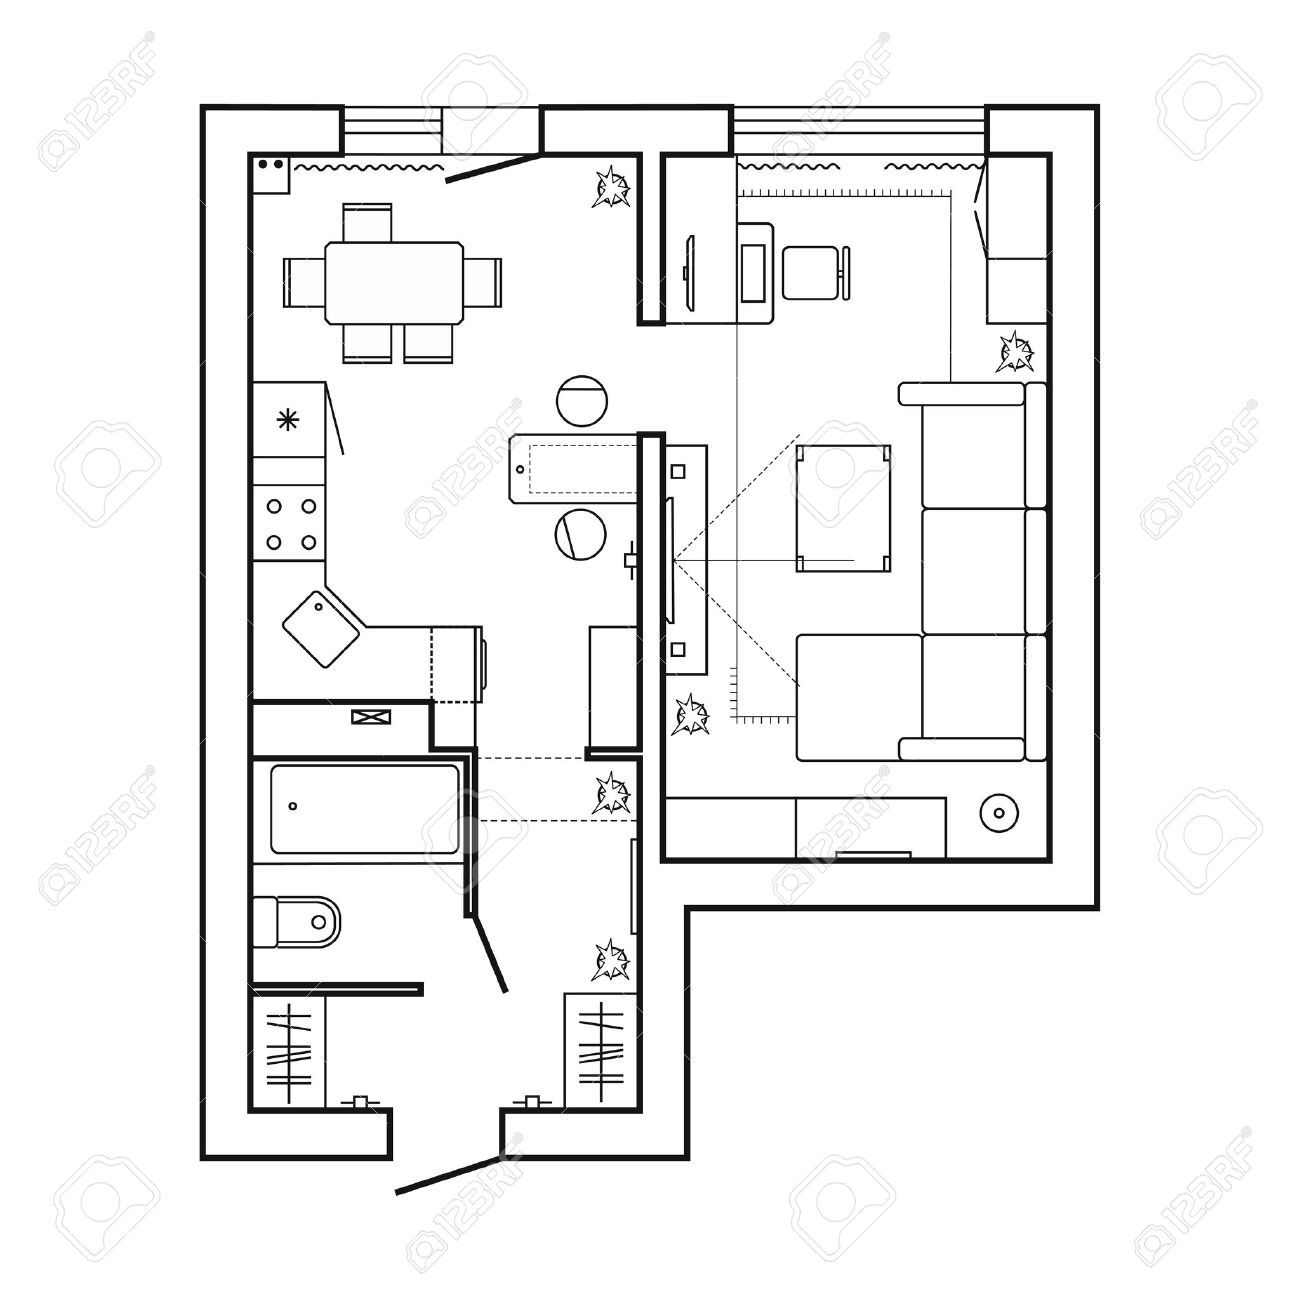 Cool Plan Avec Mobilier Plan Dutage De La Maison Cuisine With Plan D  Interieur With Plan D Architecte Maison